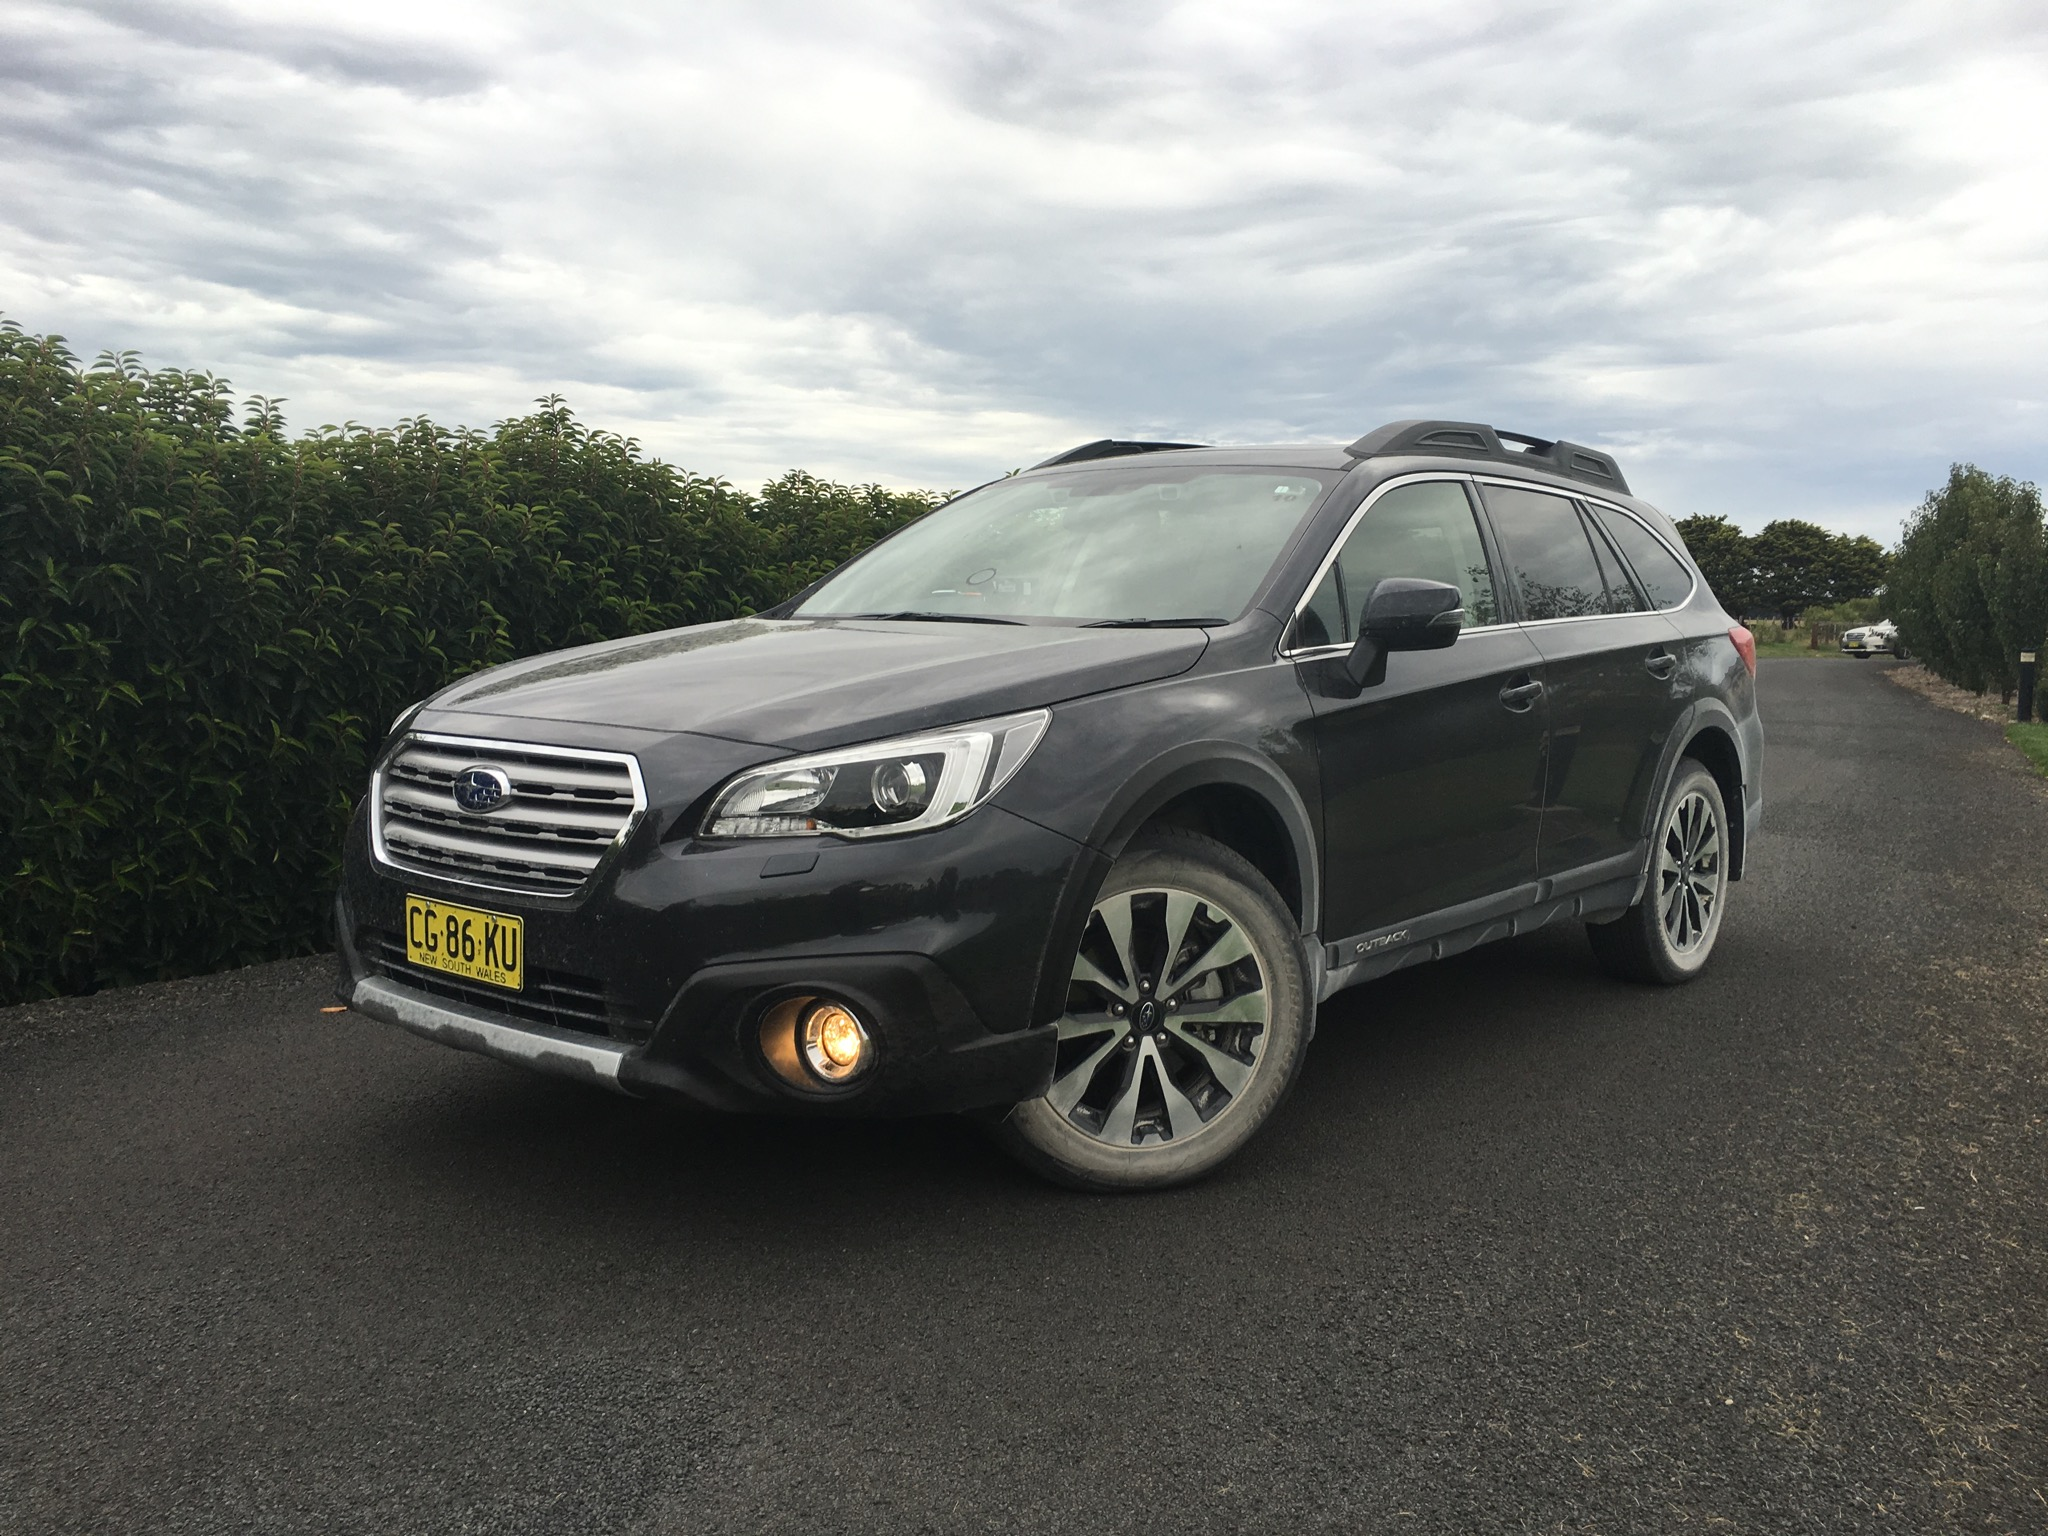 subaru outback sales pass 100 000 in australia photos 1 of 3. Black Bedroom Furniture Sets. Home Design Ideas